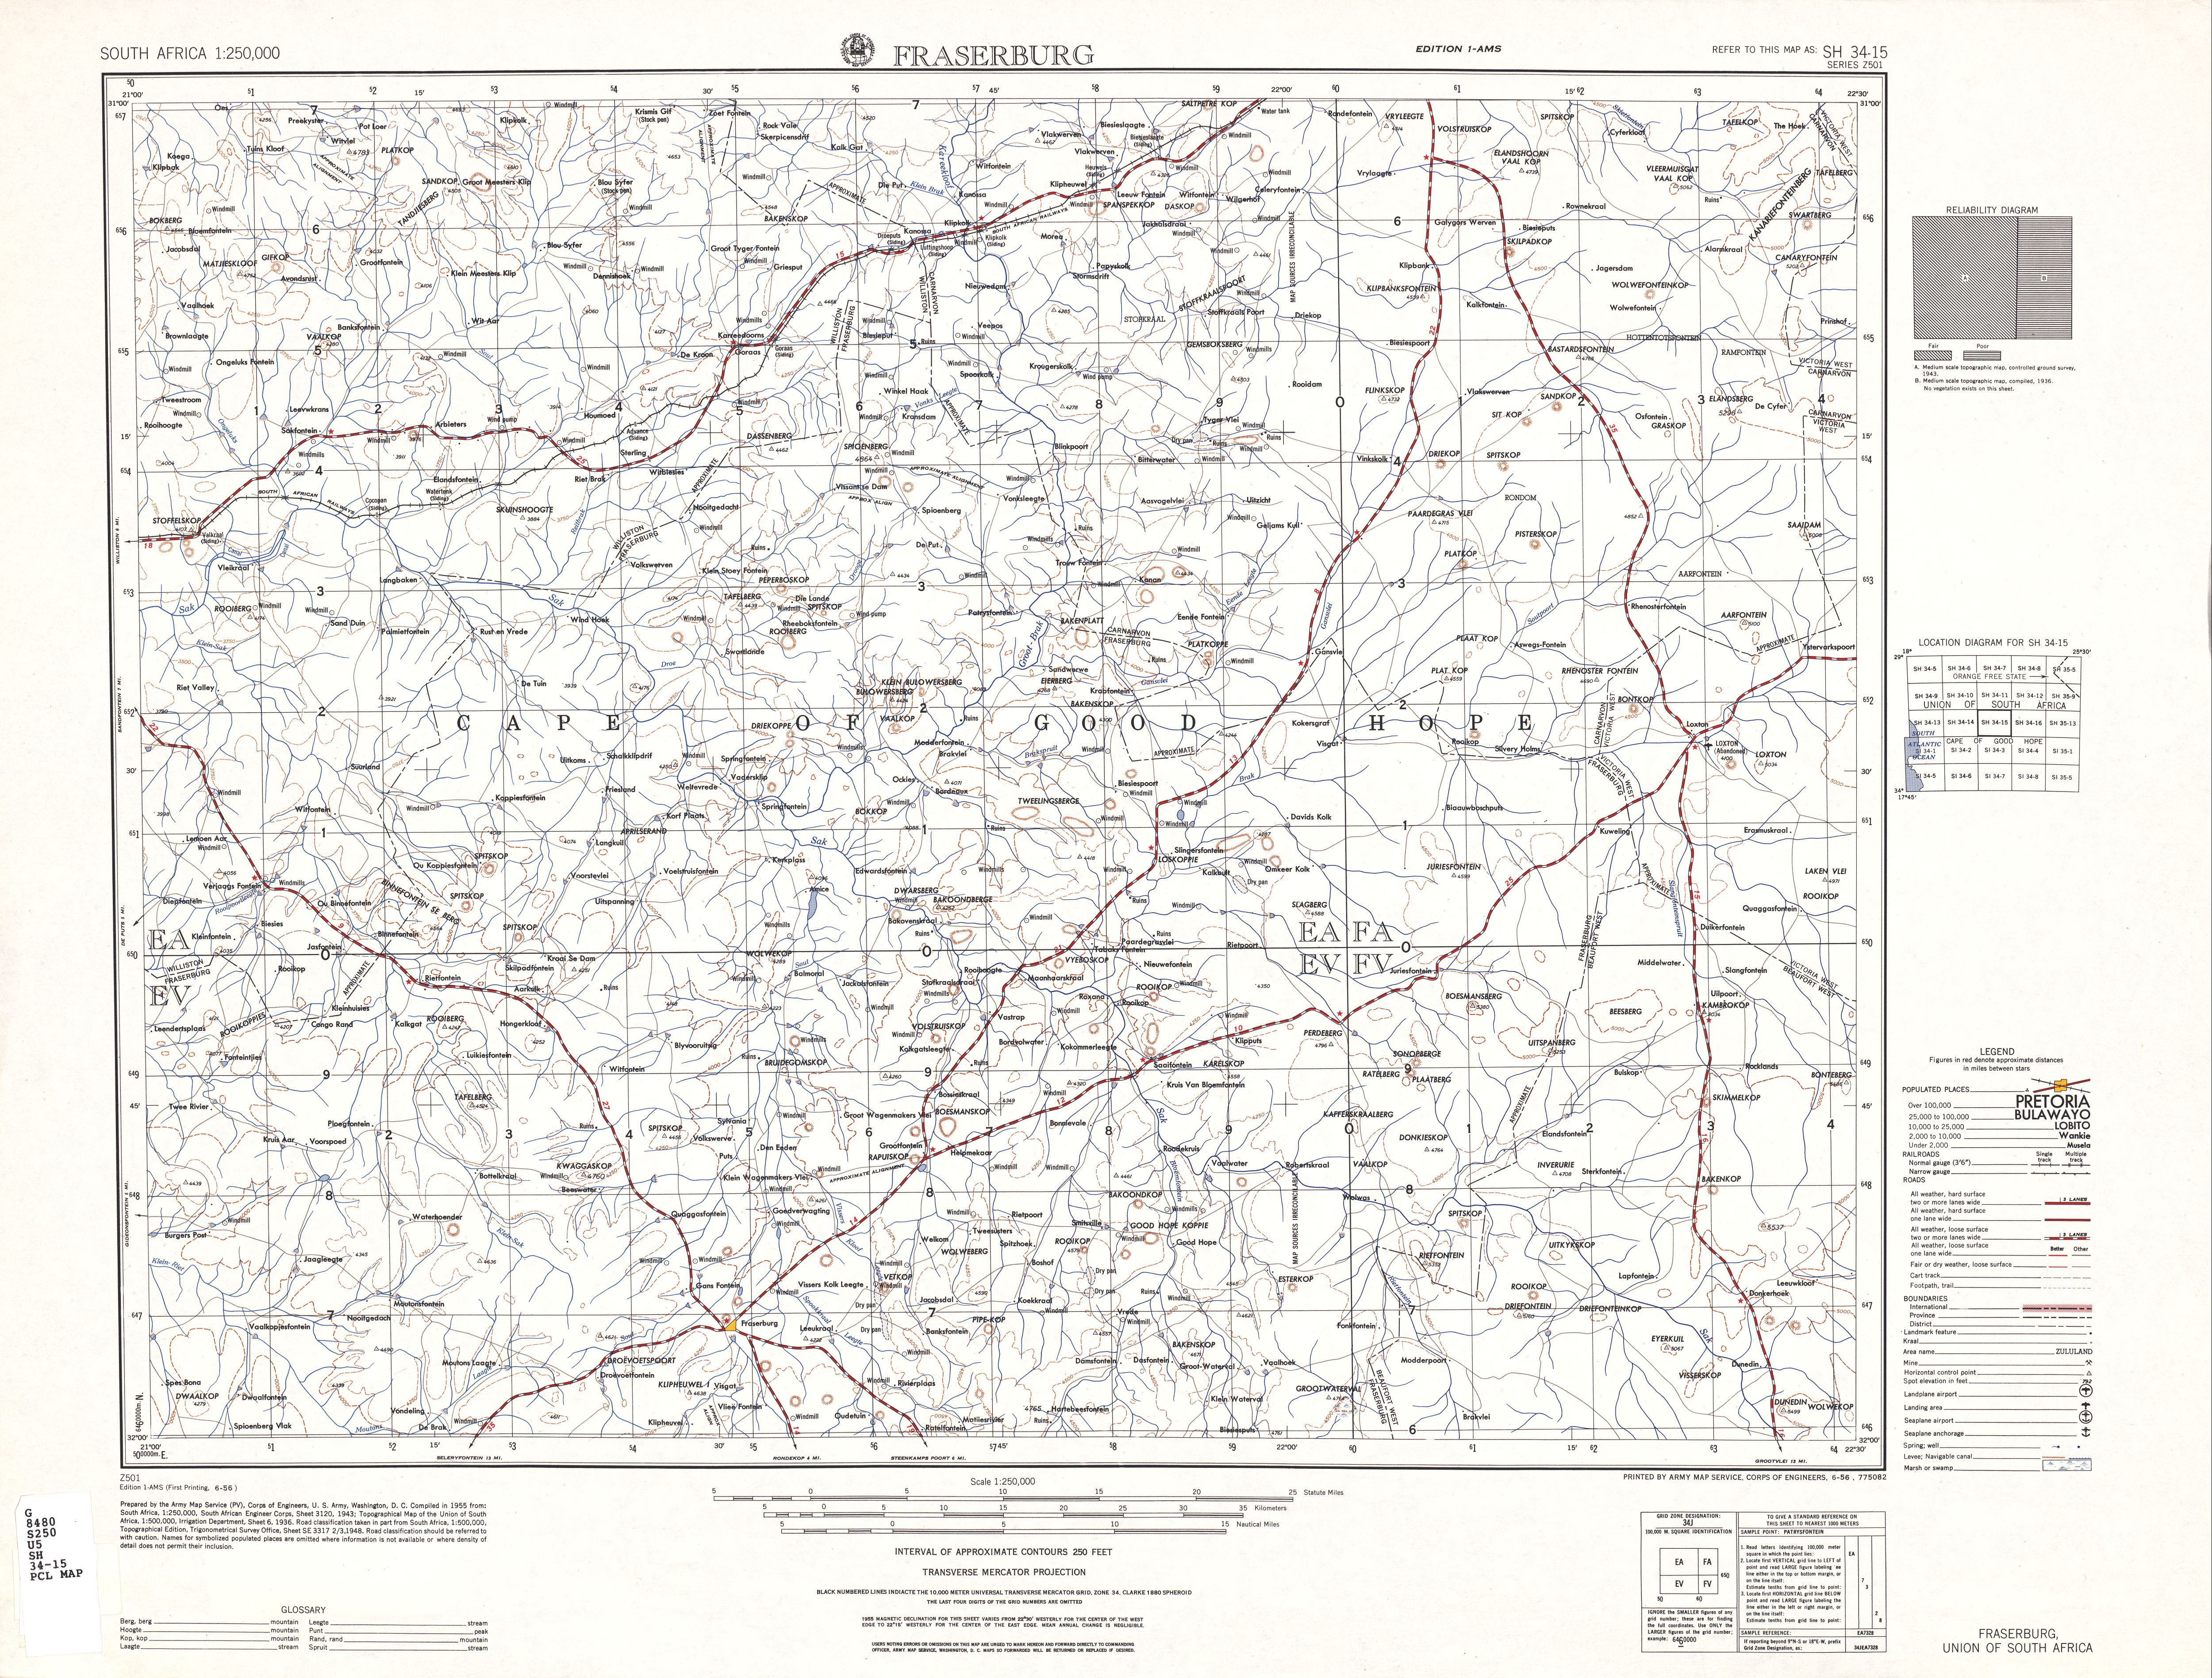 Fraserburg Topographic Map Sheet, Southern Africa 1954